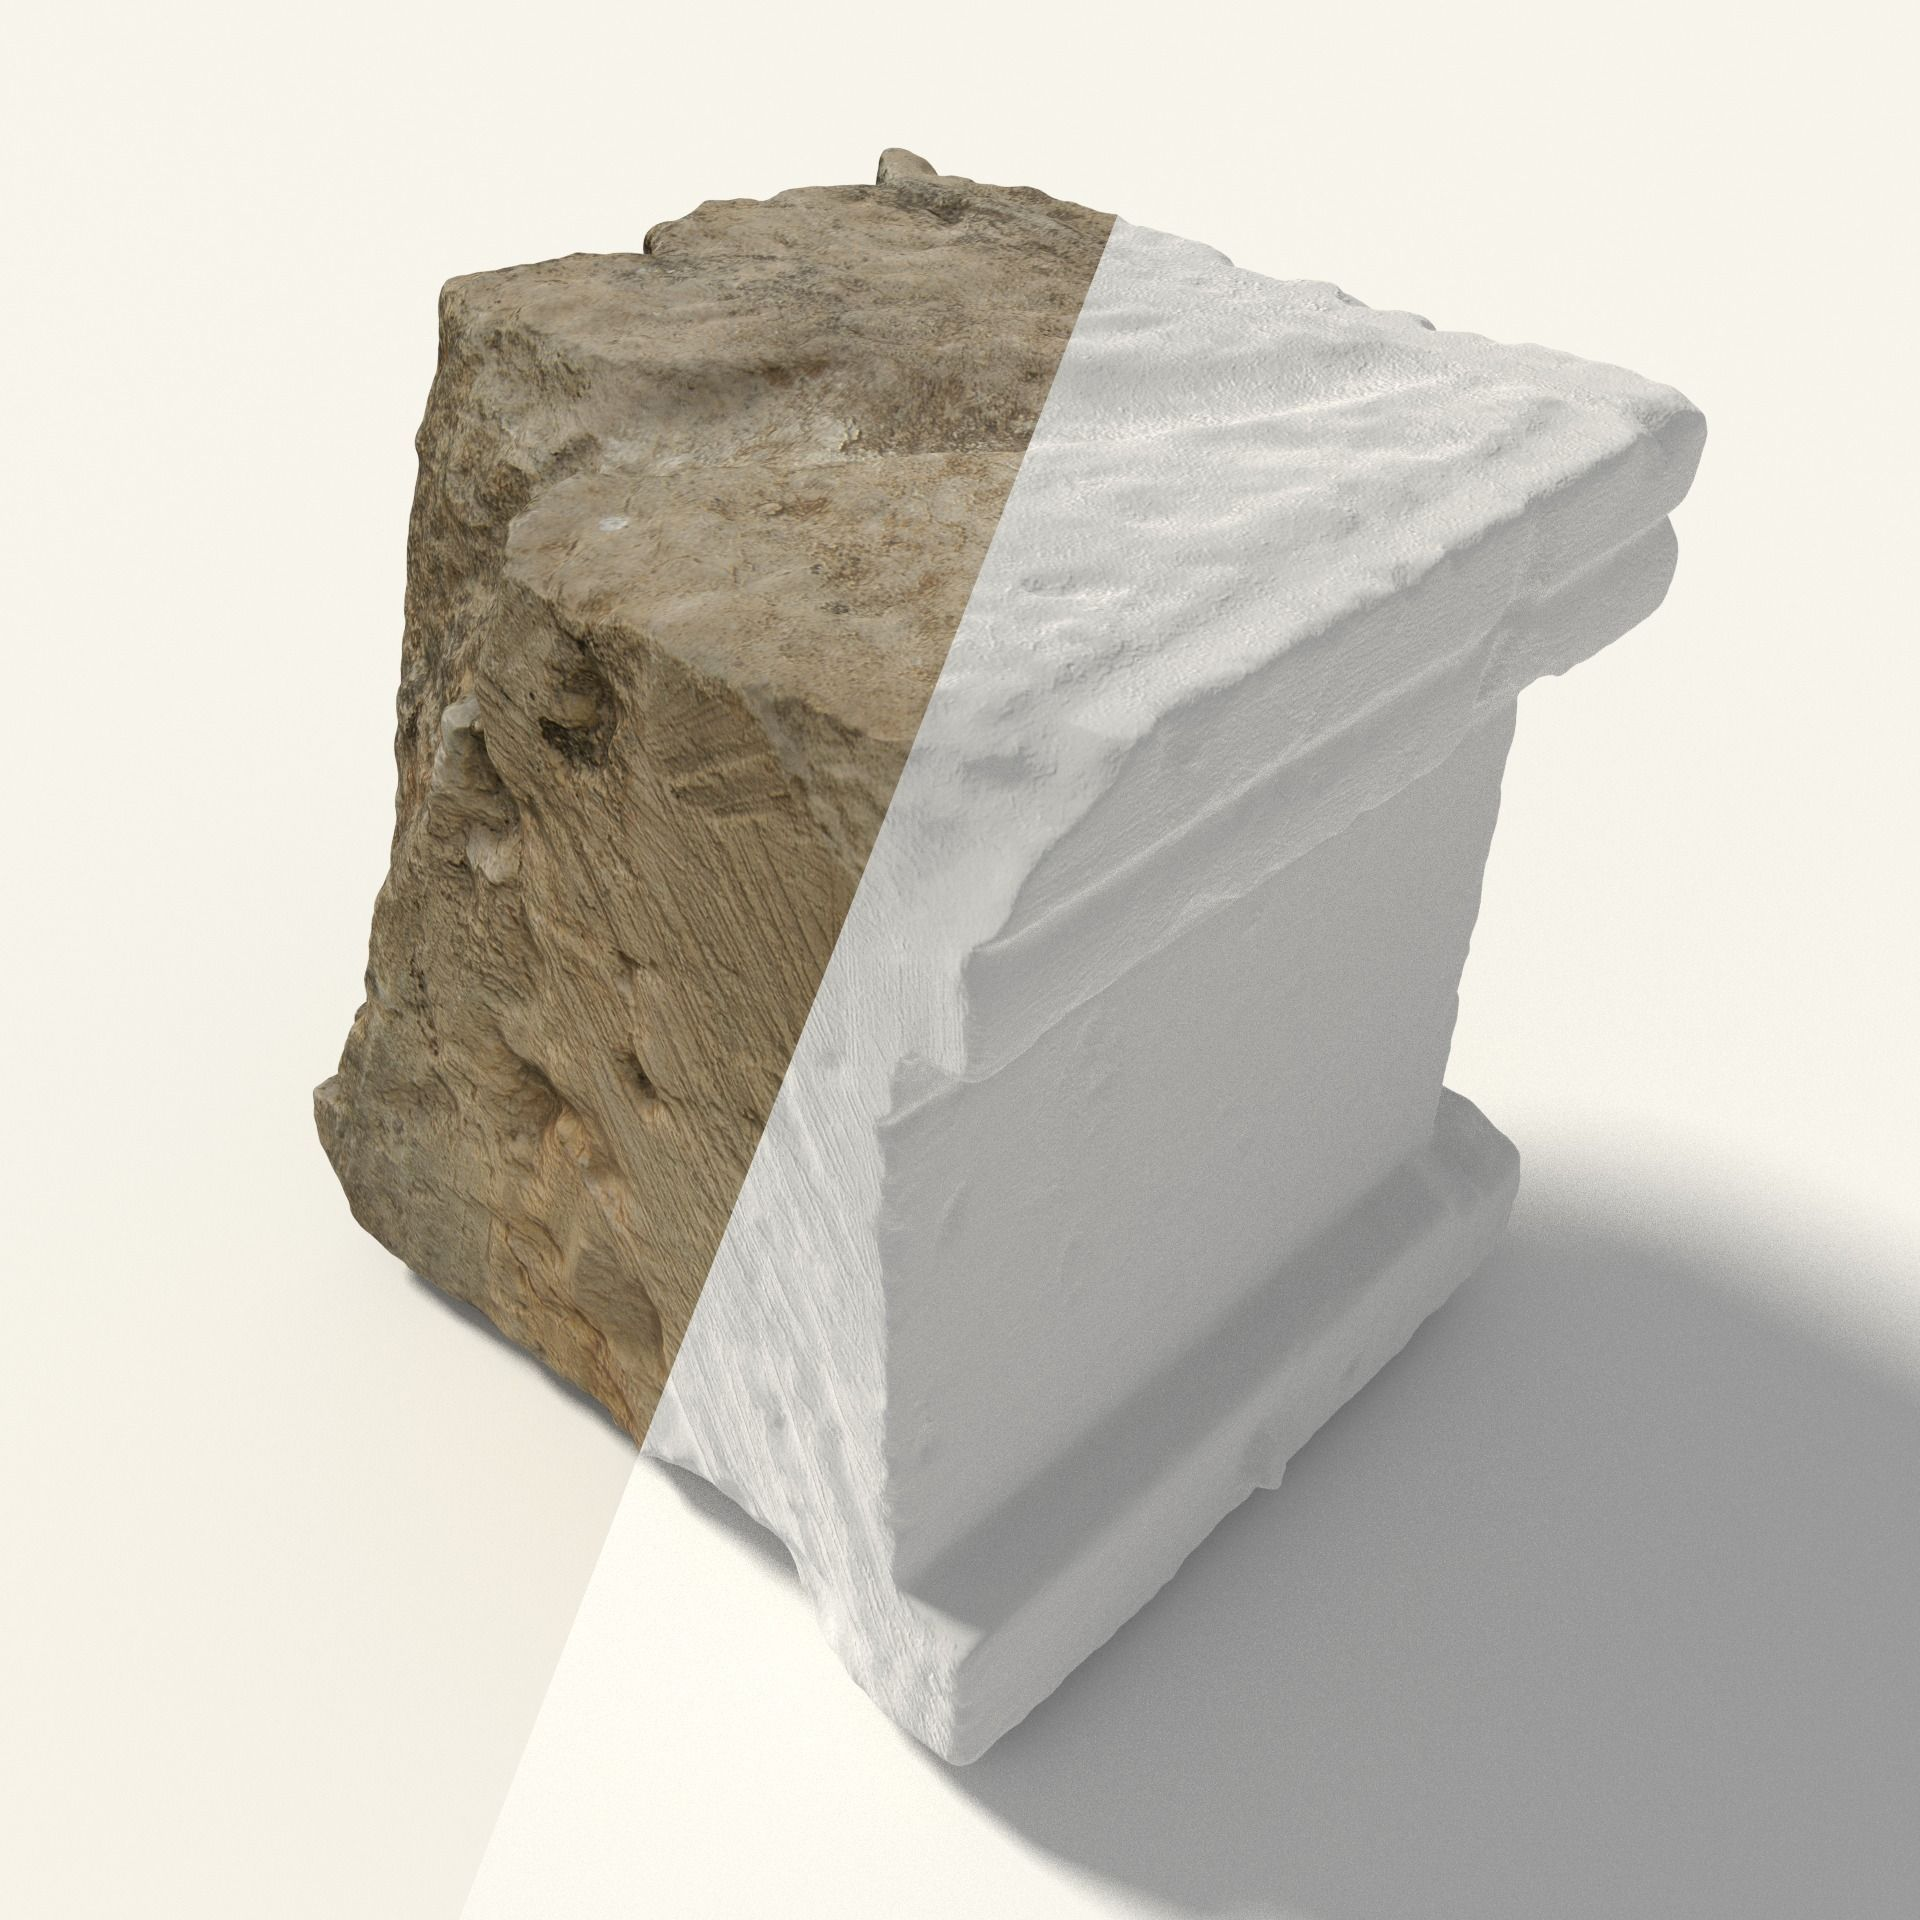 Scanned Cubic Stone 3D Model Game ready .obj .3ds .fbx ... on Granite Models  id=12052